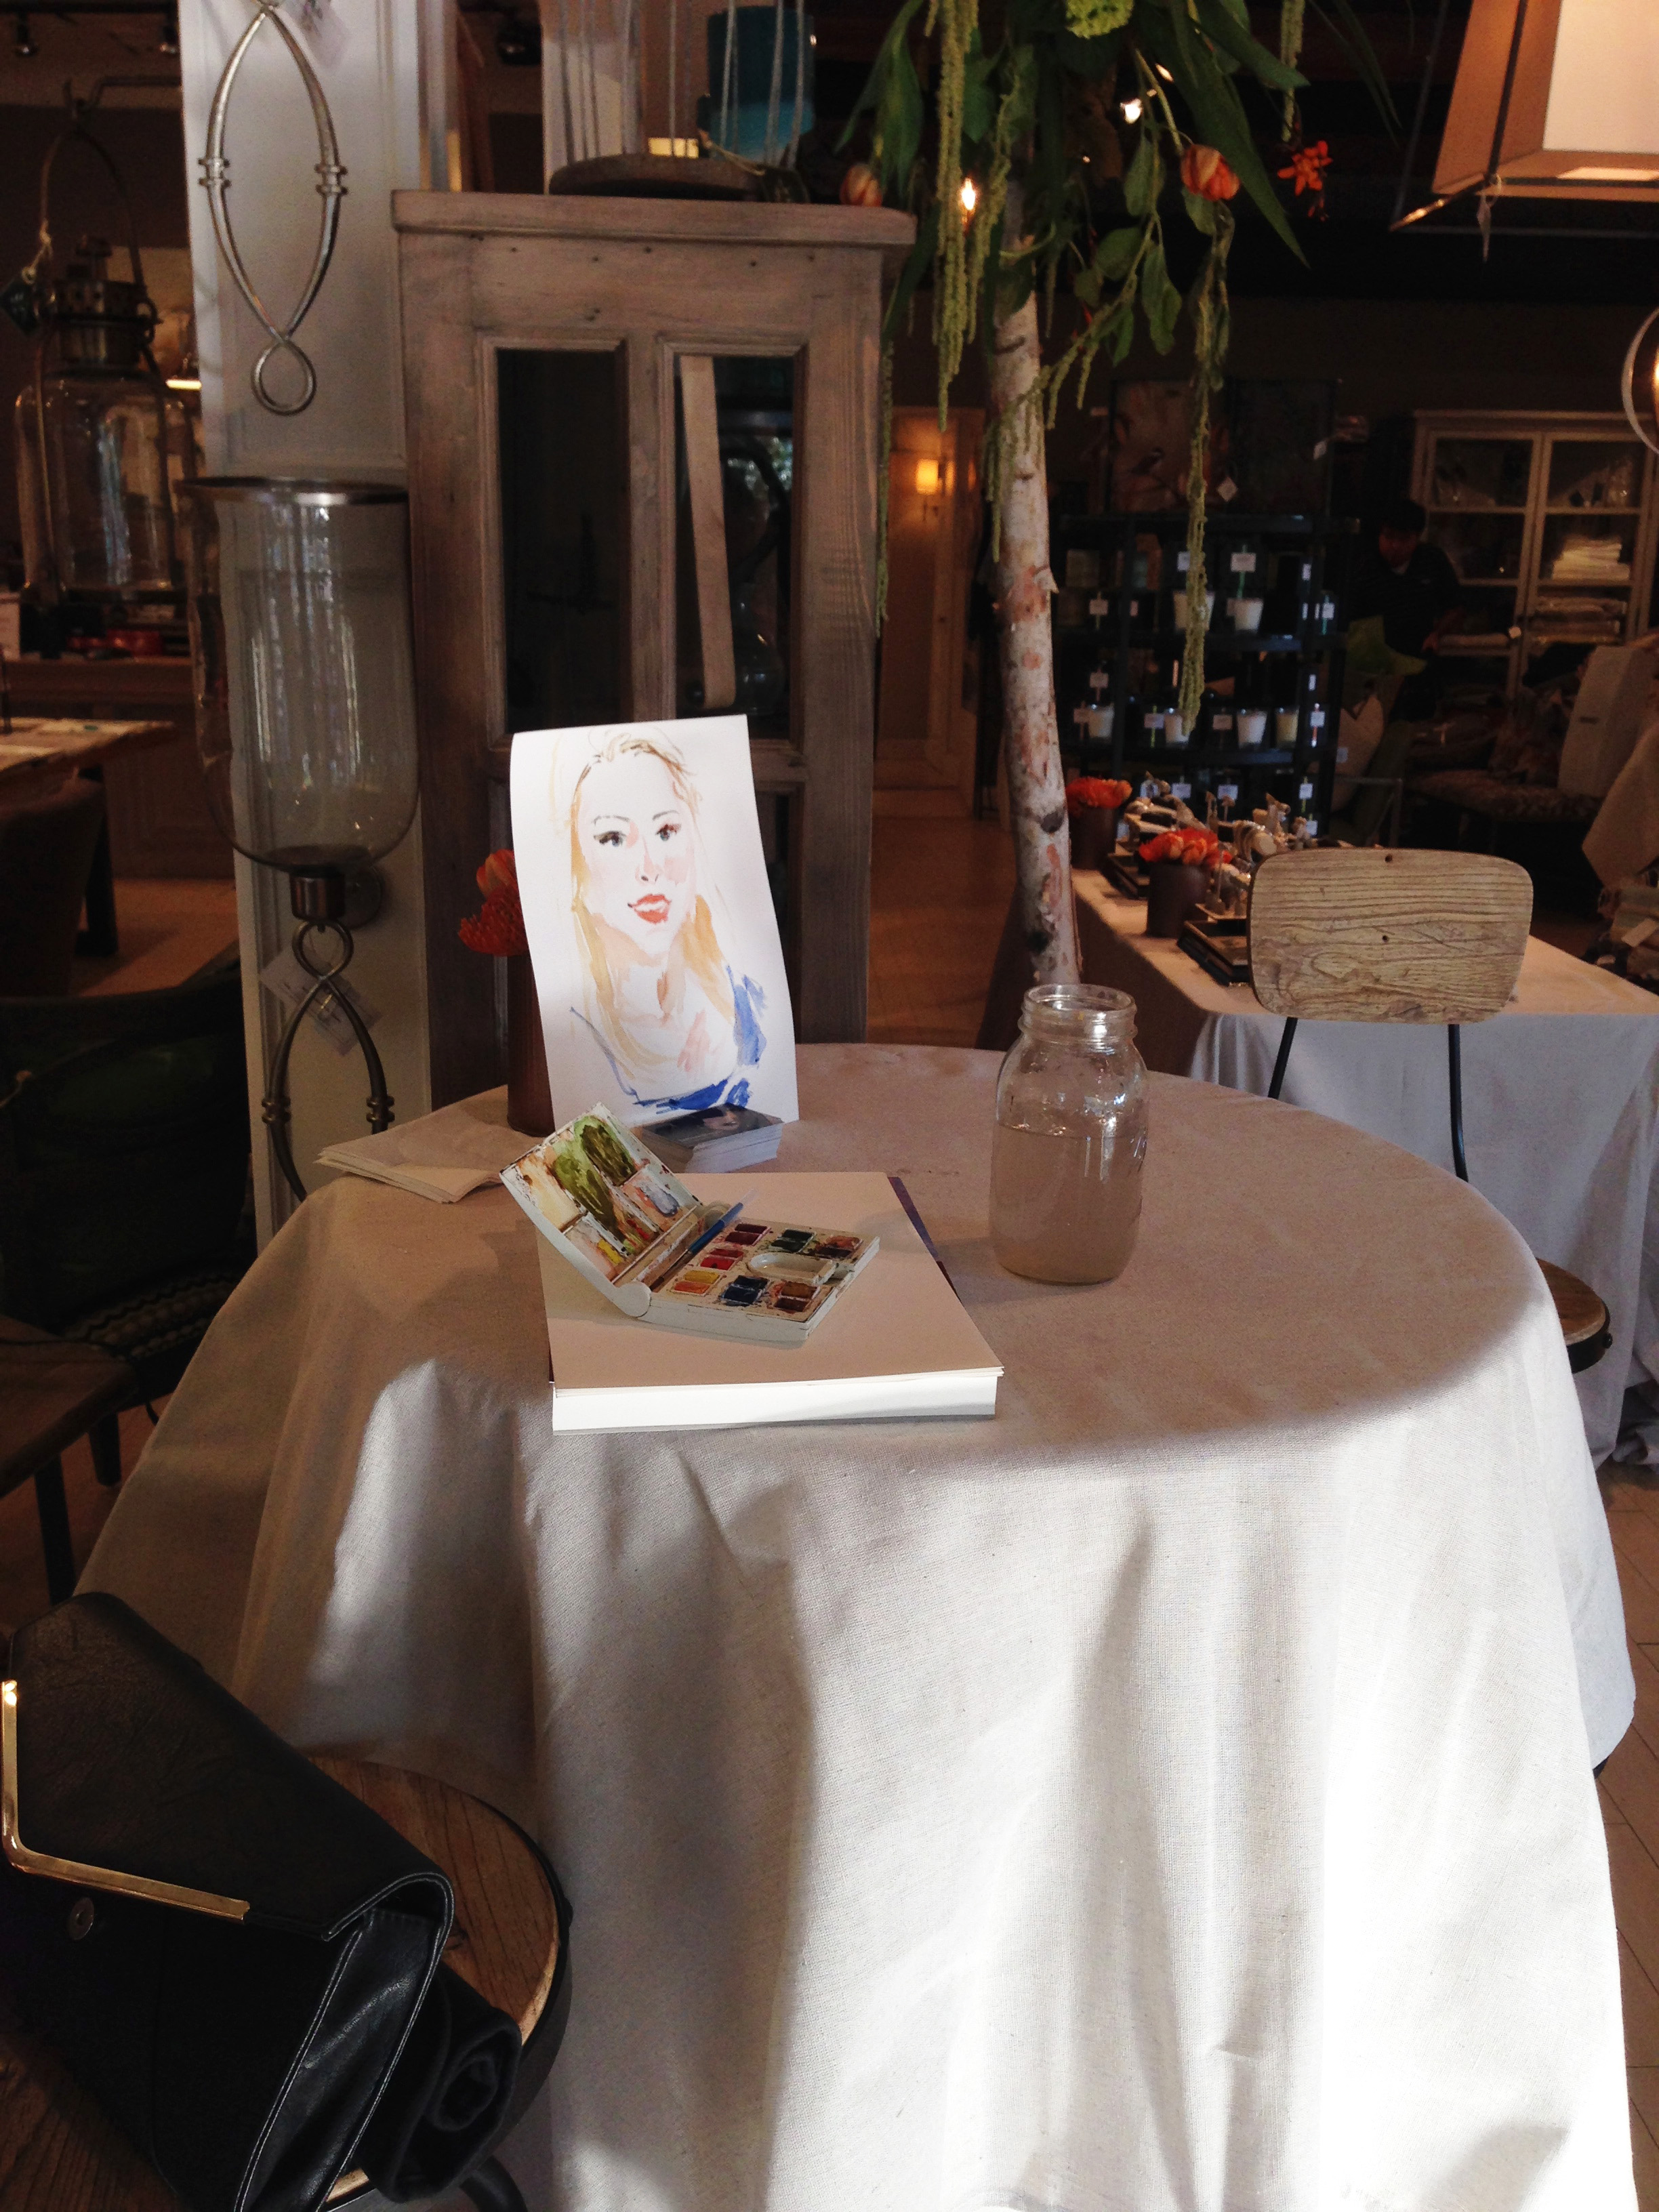 My painting station at the Nandina store in Aiken, SC. Such a beautiful environment for a party, all the fine finishings were a perfect backdrop to the night.